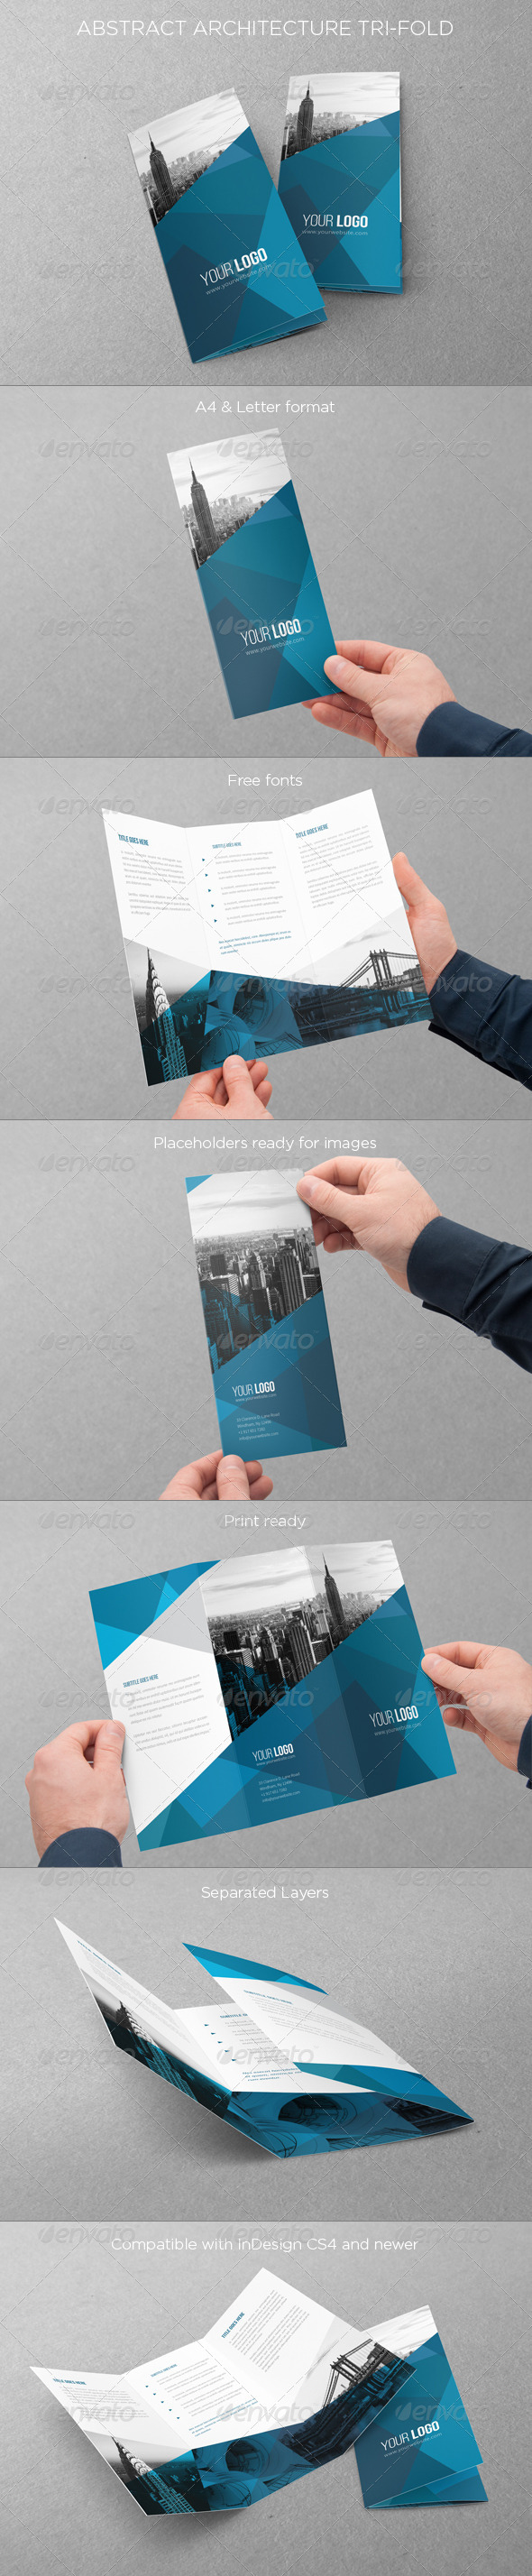 GraphicRiver Abstract Architecture Trifold 7230003